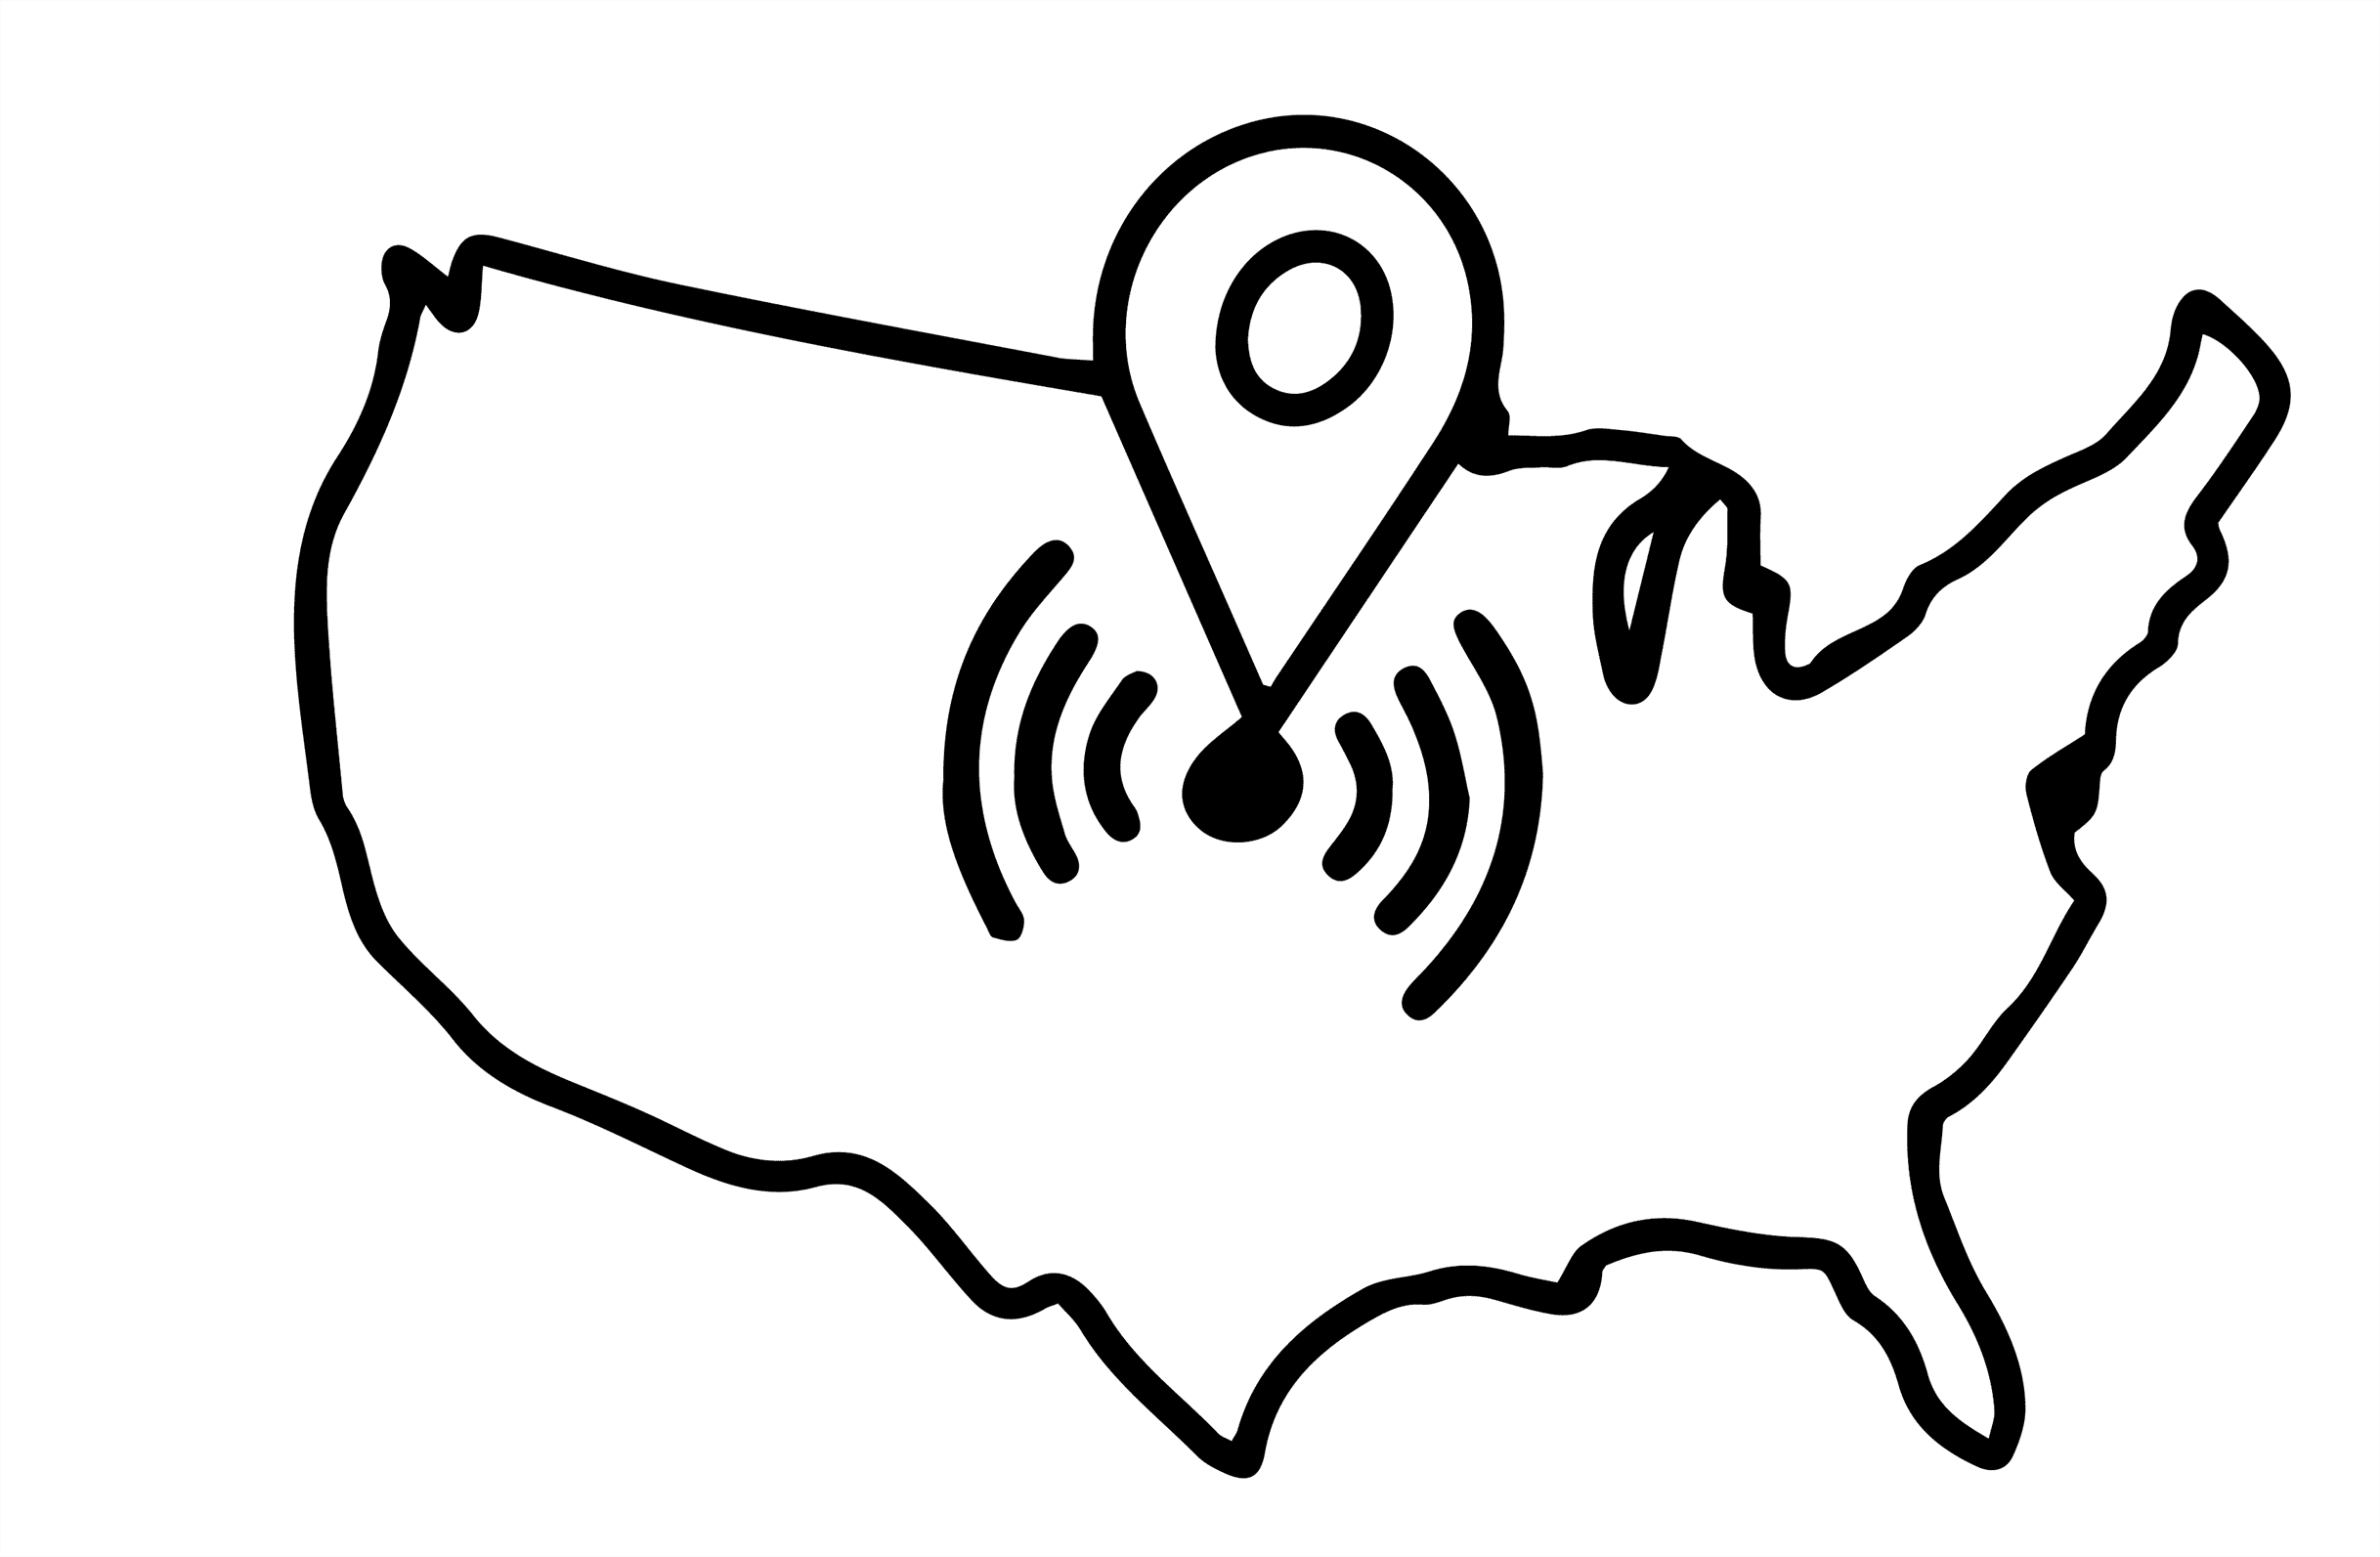 line outline of the United States with a pinpoint in the middle.